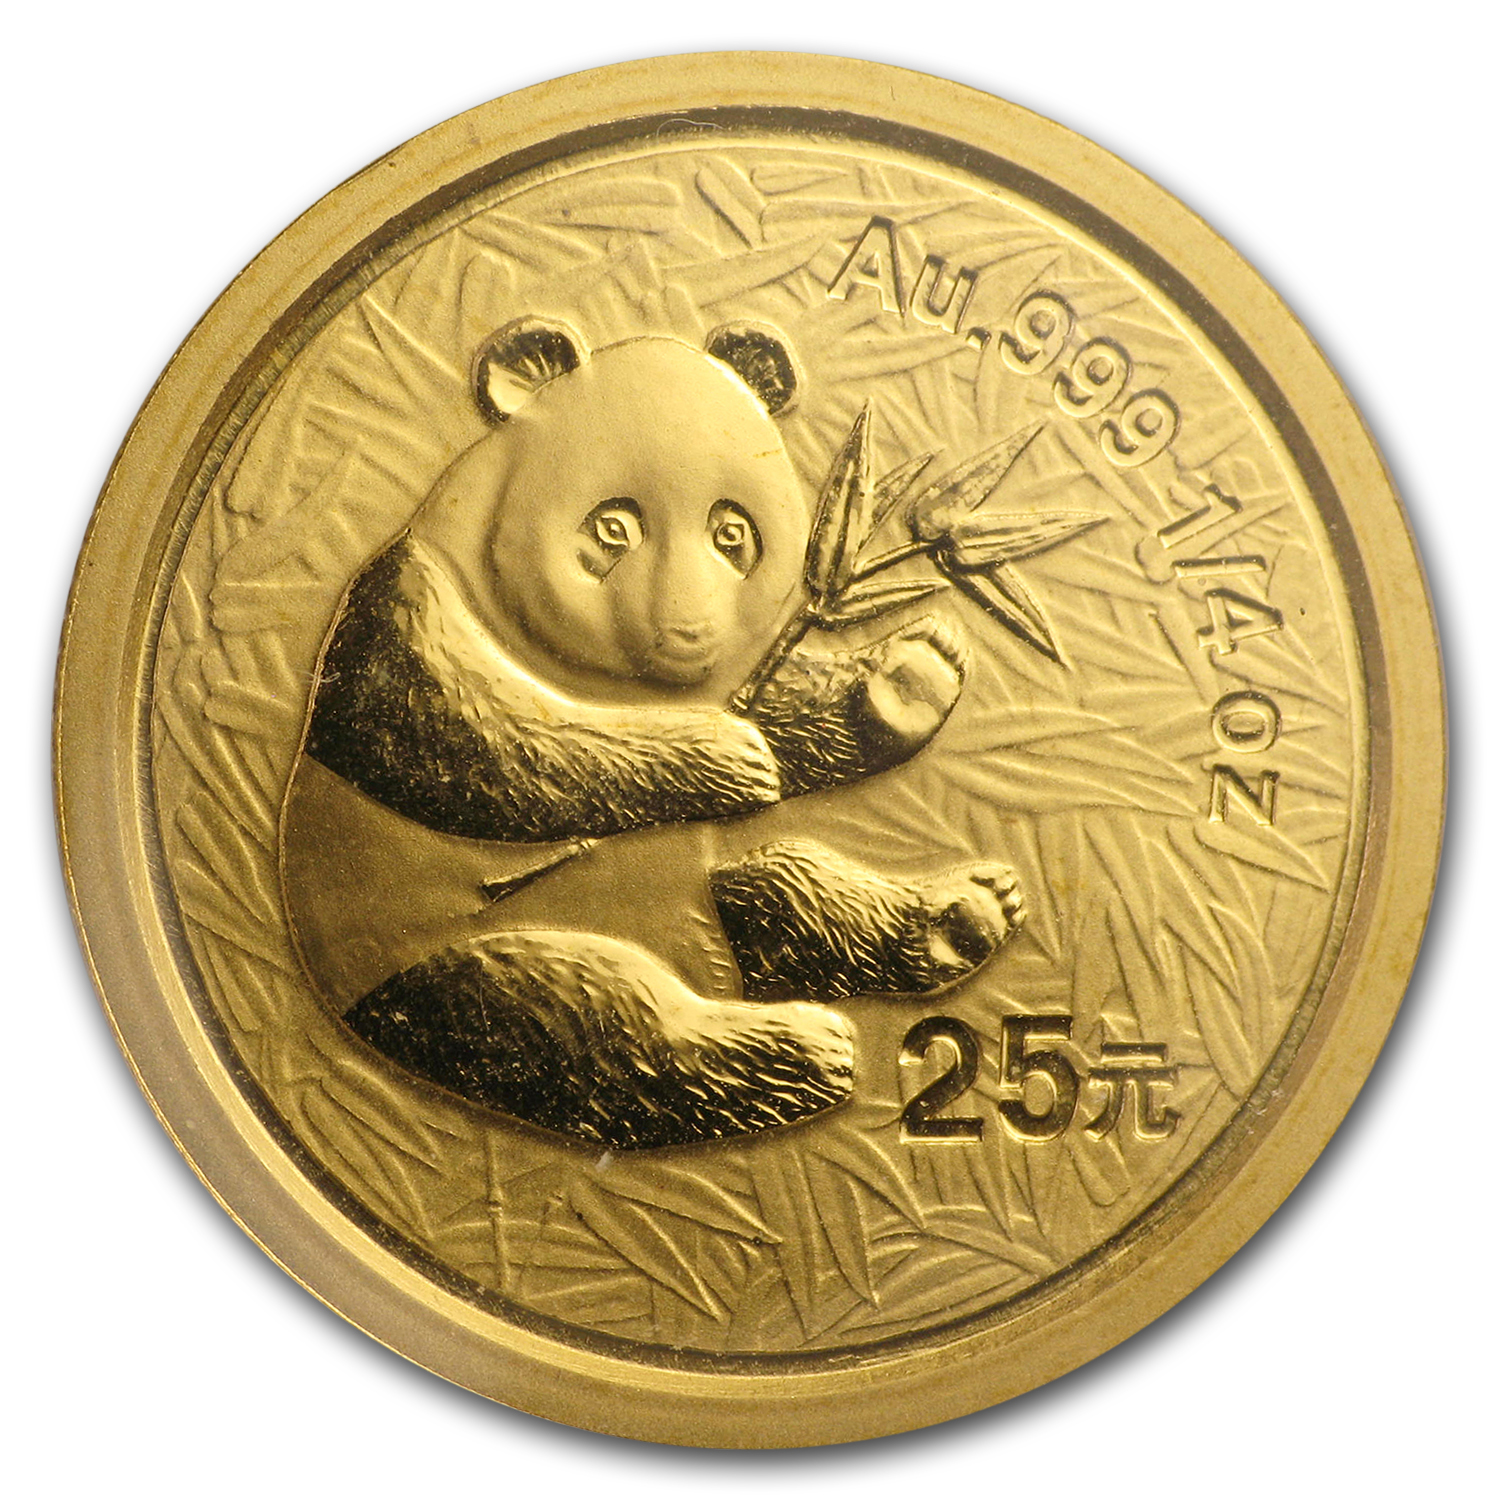 2000 China 1/4 oz Gold Panda Frosted BU (Sealed)